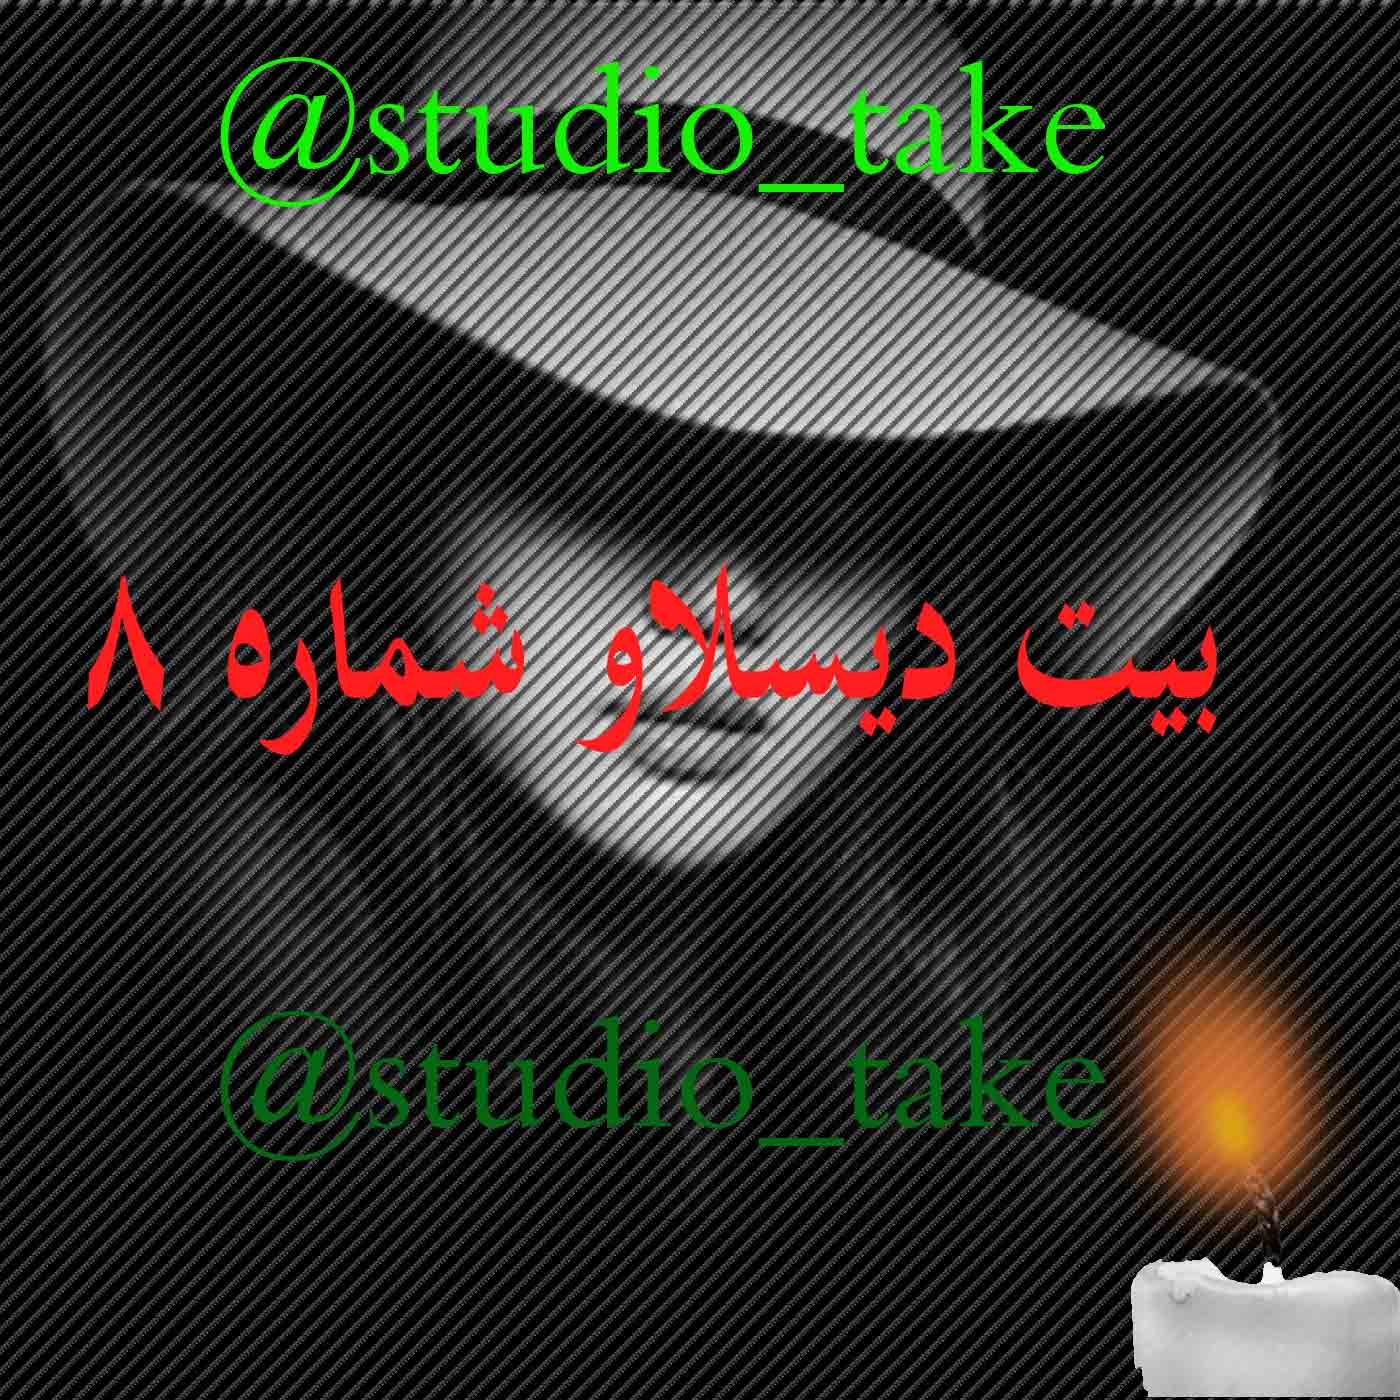 @studio_take beat diss love number 8 by studio take@studio_take beat diss love number 8 by studio take